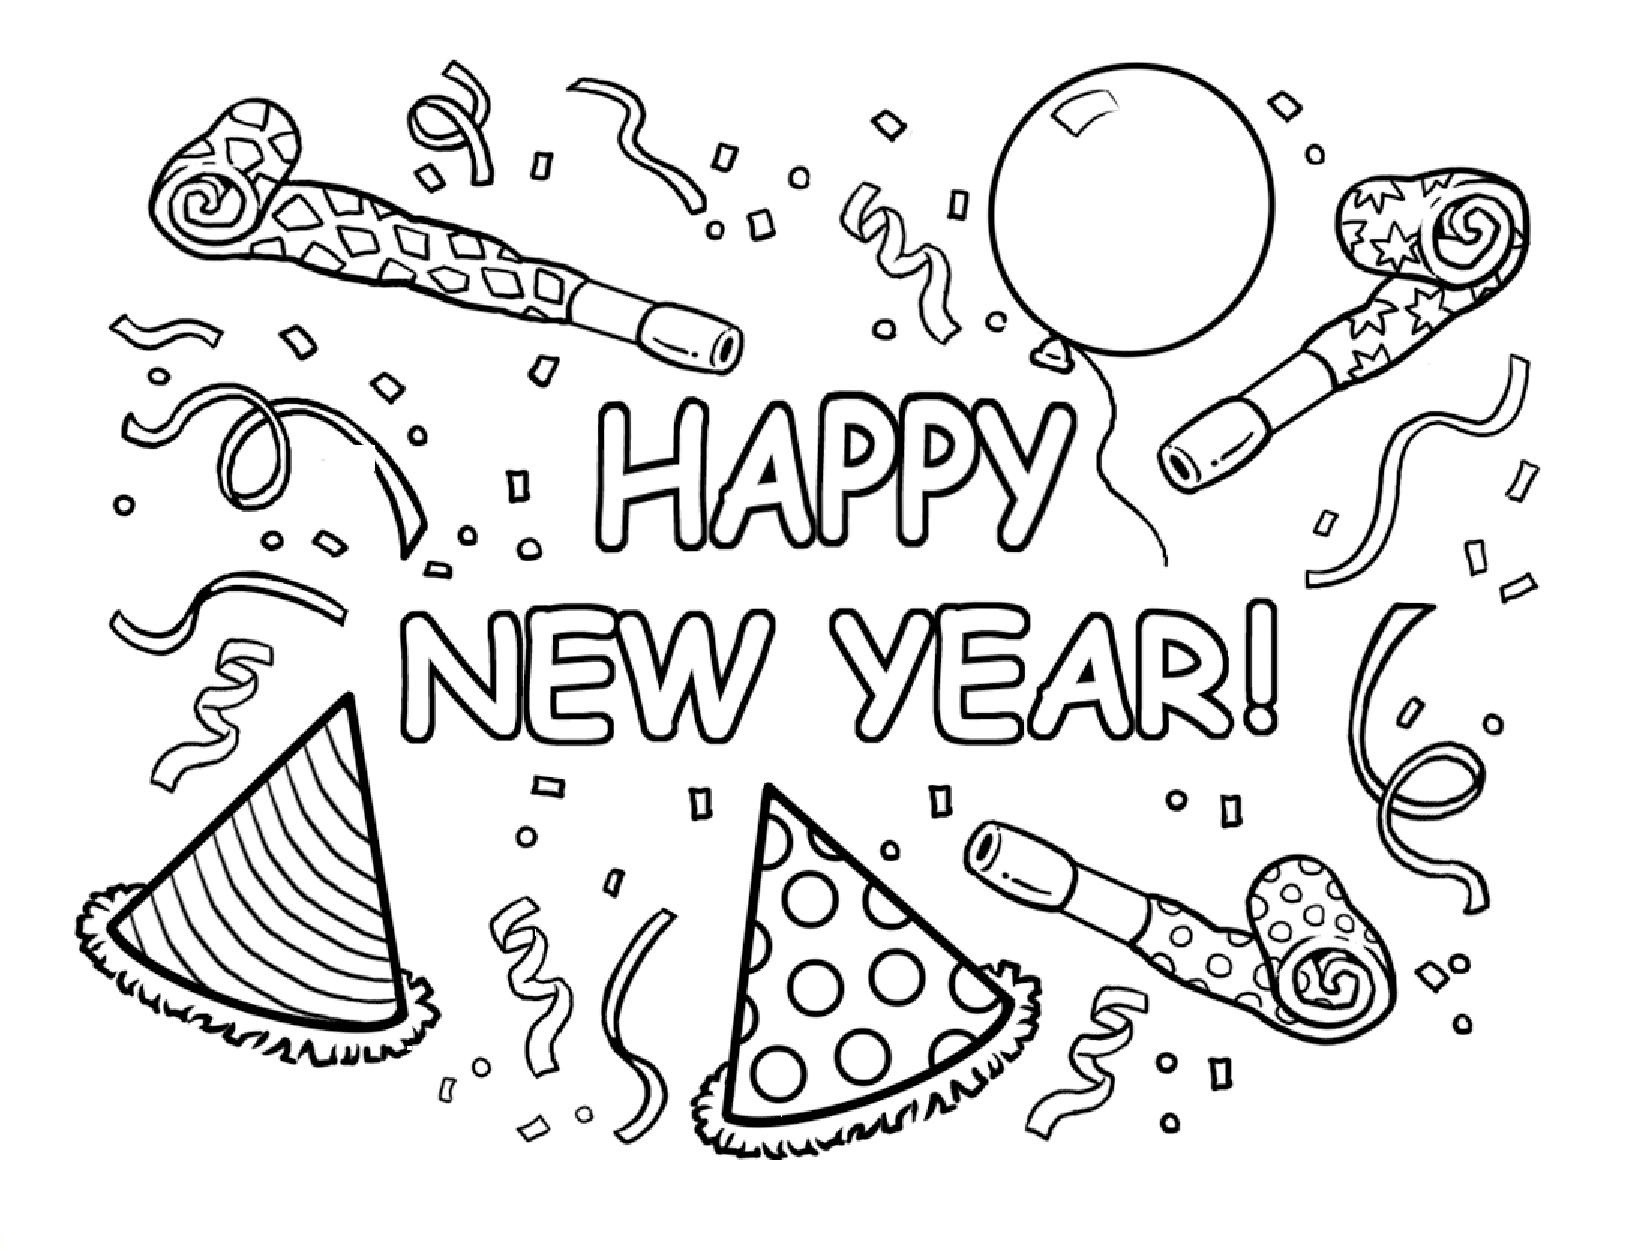 Happy New Year Coloring Pages Best Coloring Pages For Kids New Years Coloring Pages For